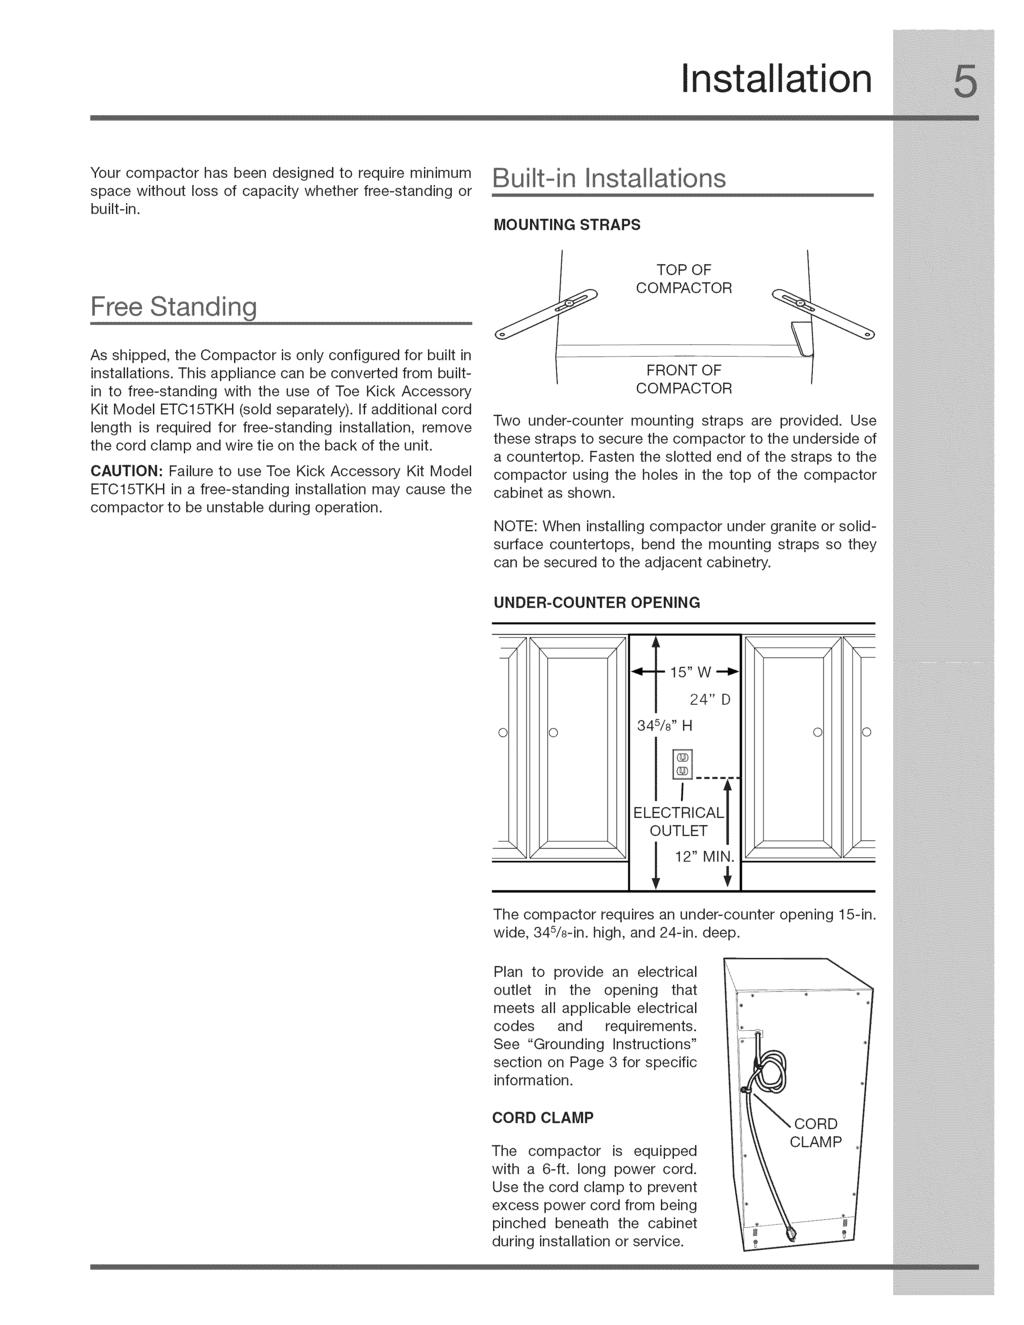 Installation Your compactor has been designed to require minimum space without loss of capacity whether free-standing or built-in.